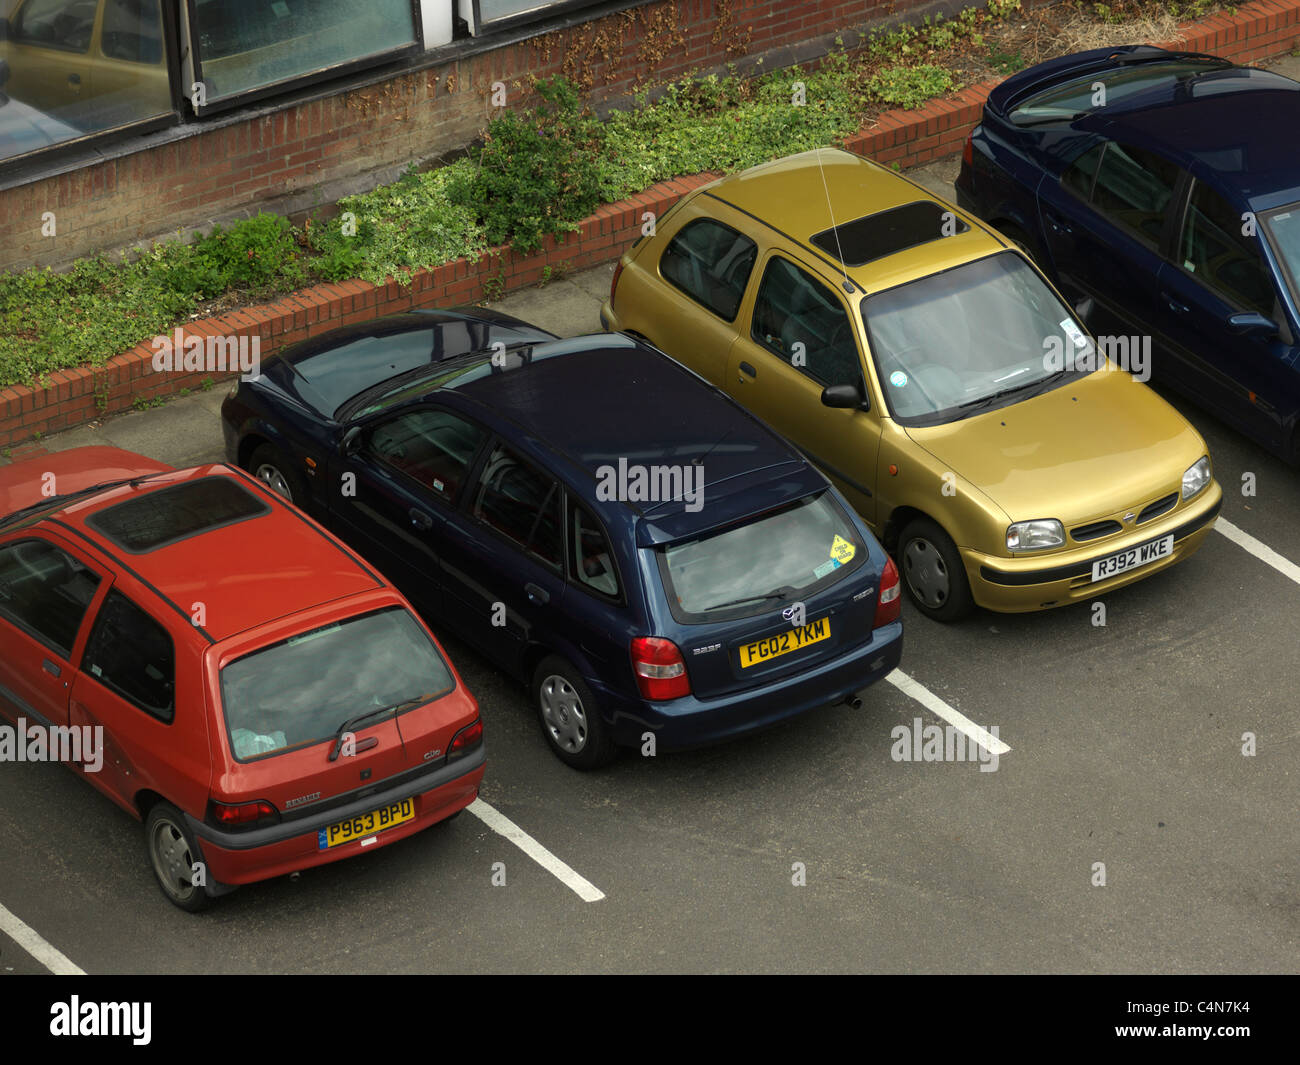 Row Of Cars In Car Park England - Stock Image